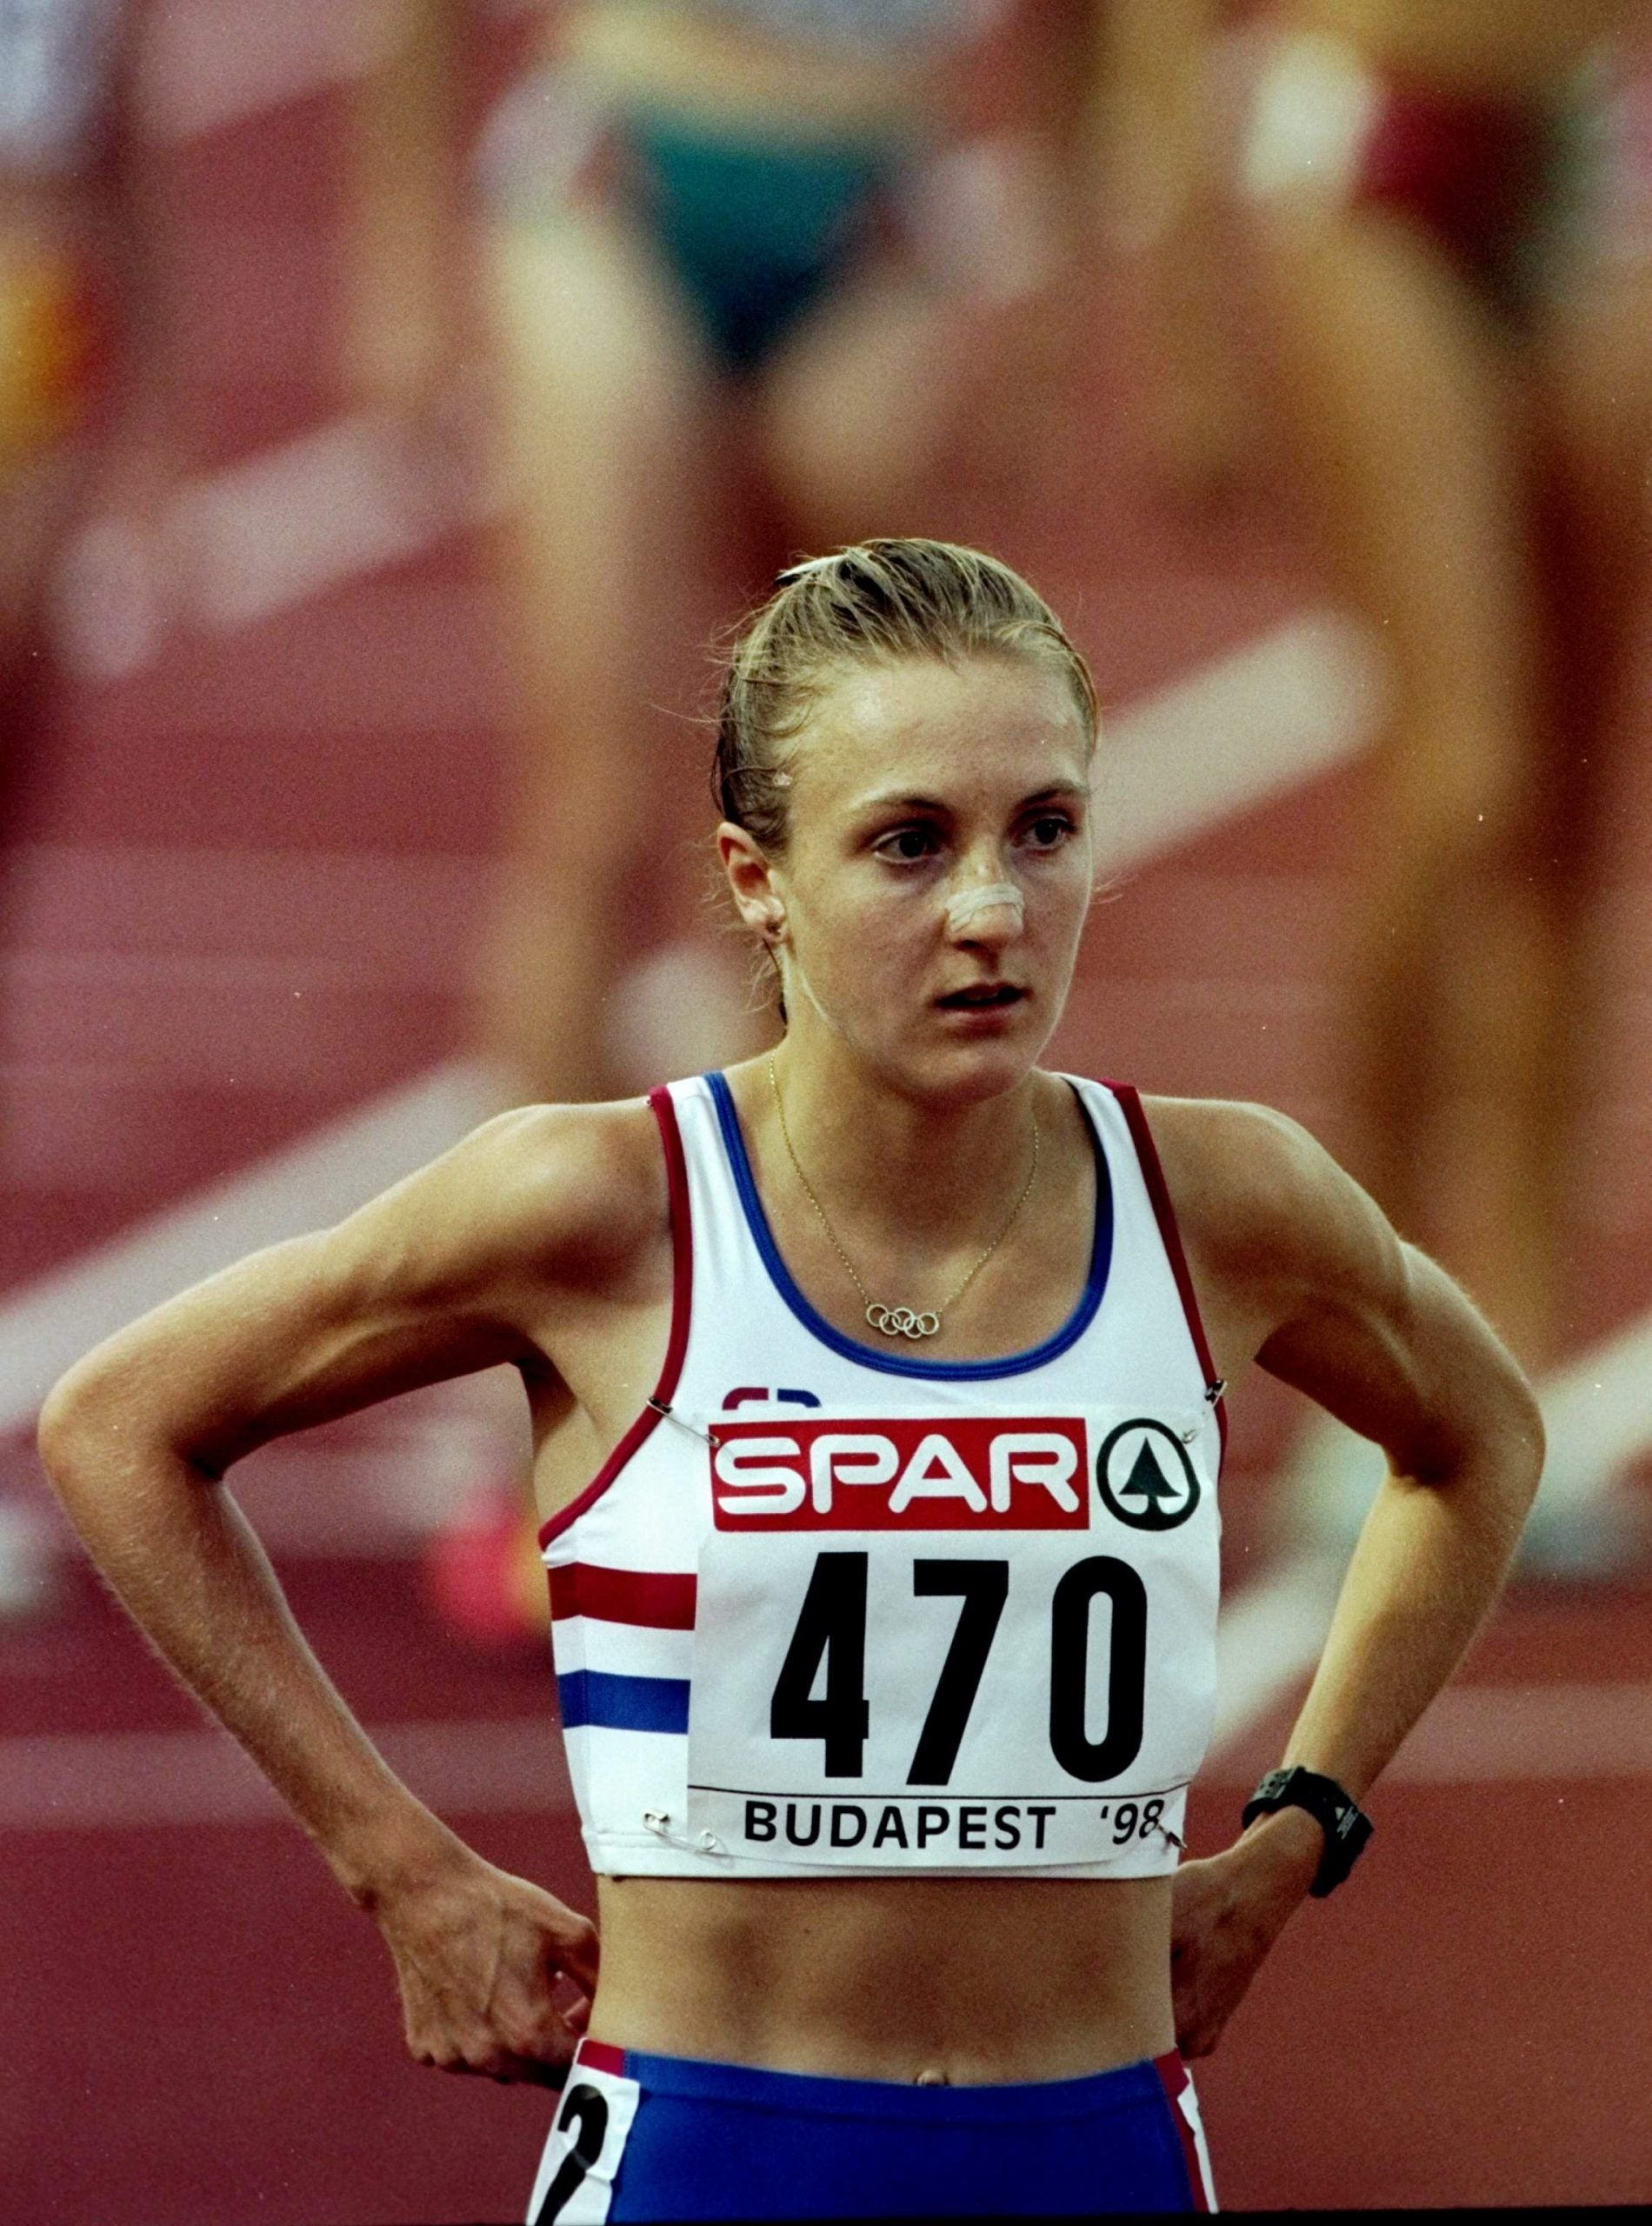 Paula Radcliffe is wrong to fight for her world record – no athlete should be defined by a number